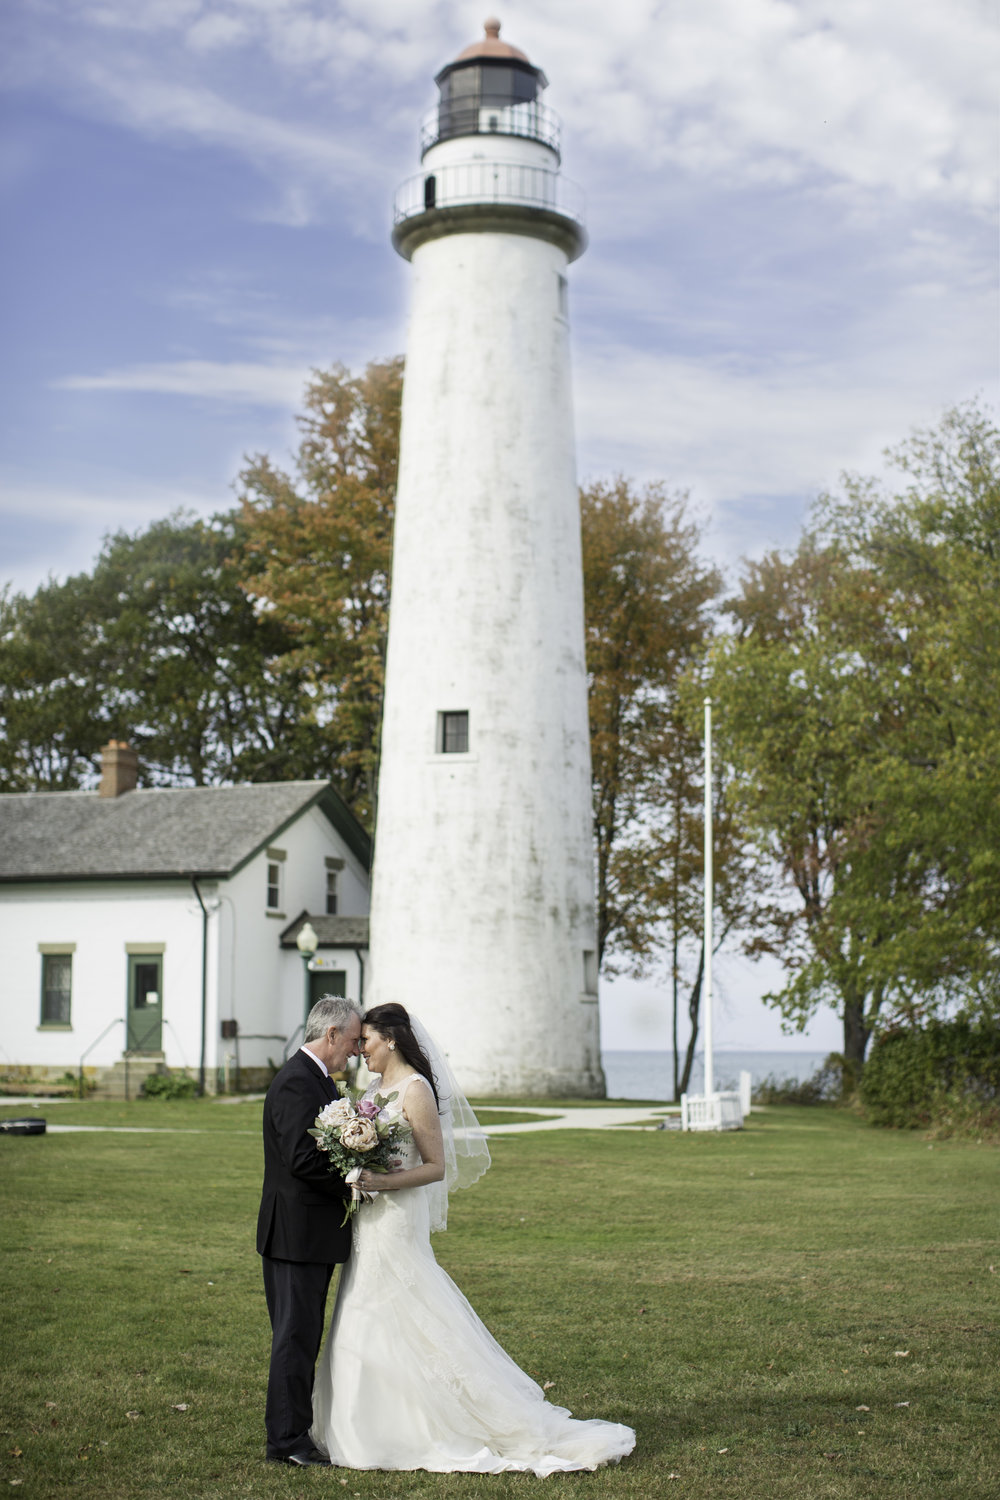 bride and groom taking wedding photos in front of a lighthouse in the fall